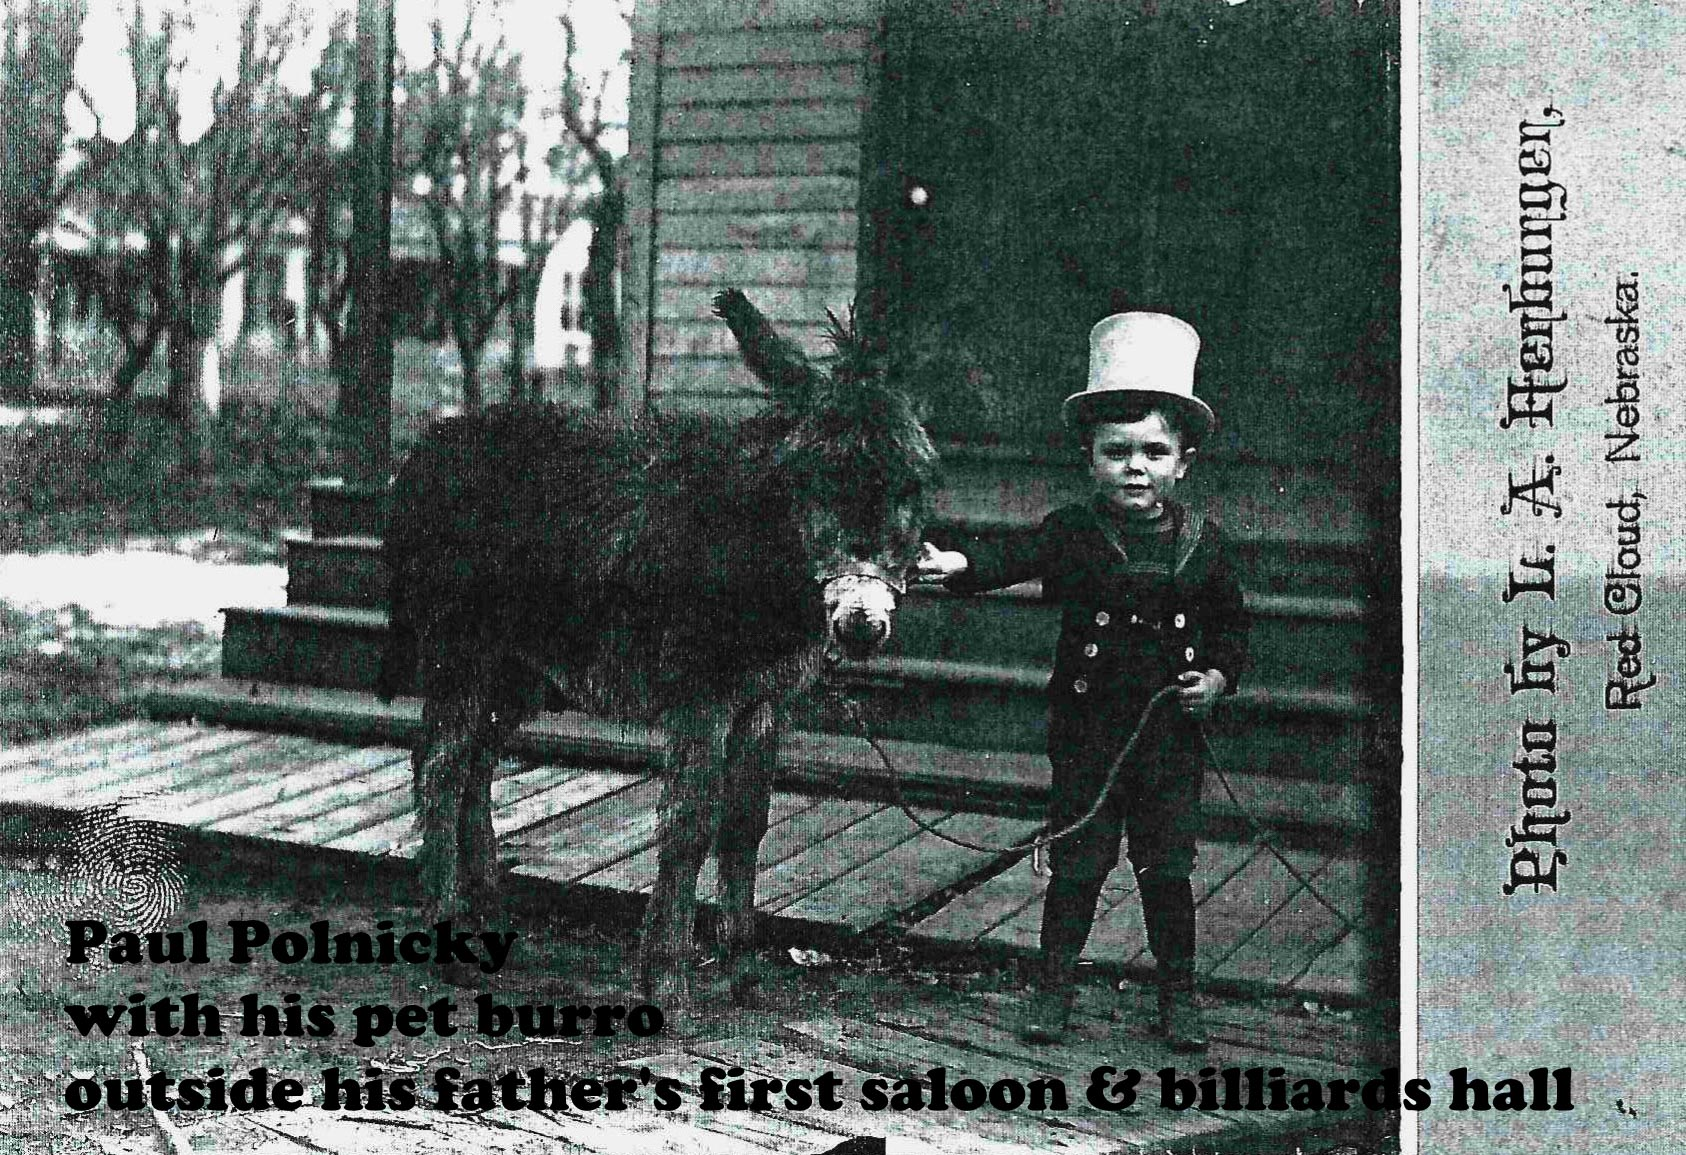 walkingtourLITTLE BOY DONKEY-labeled